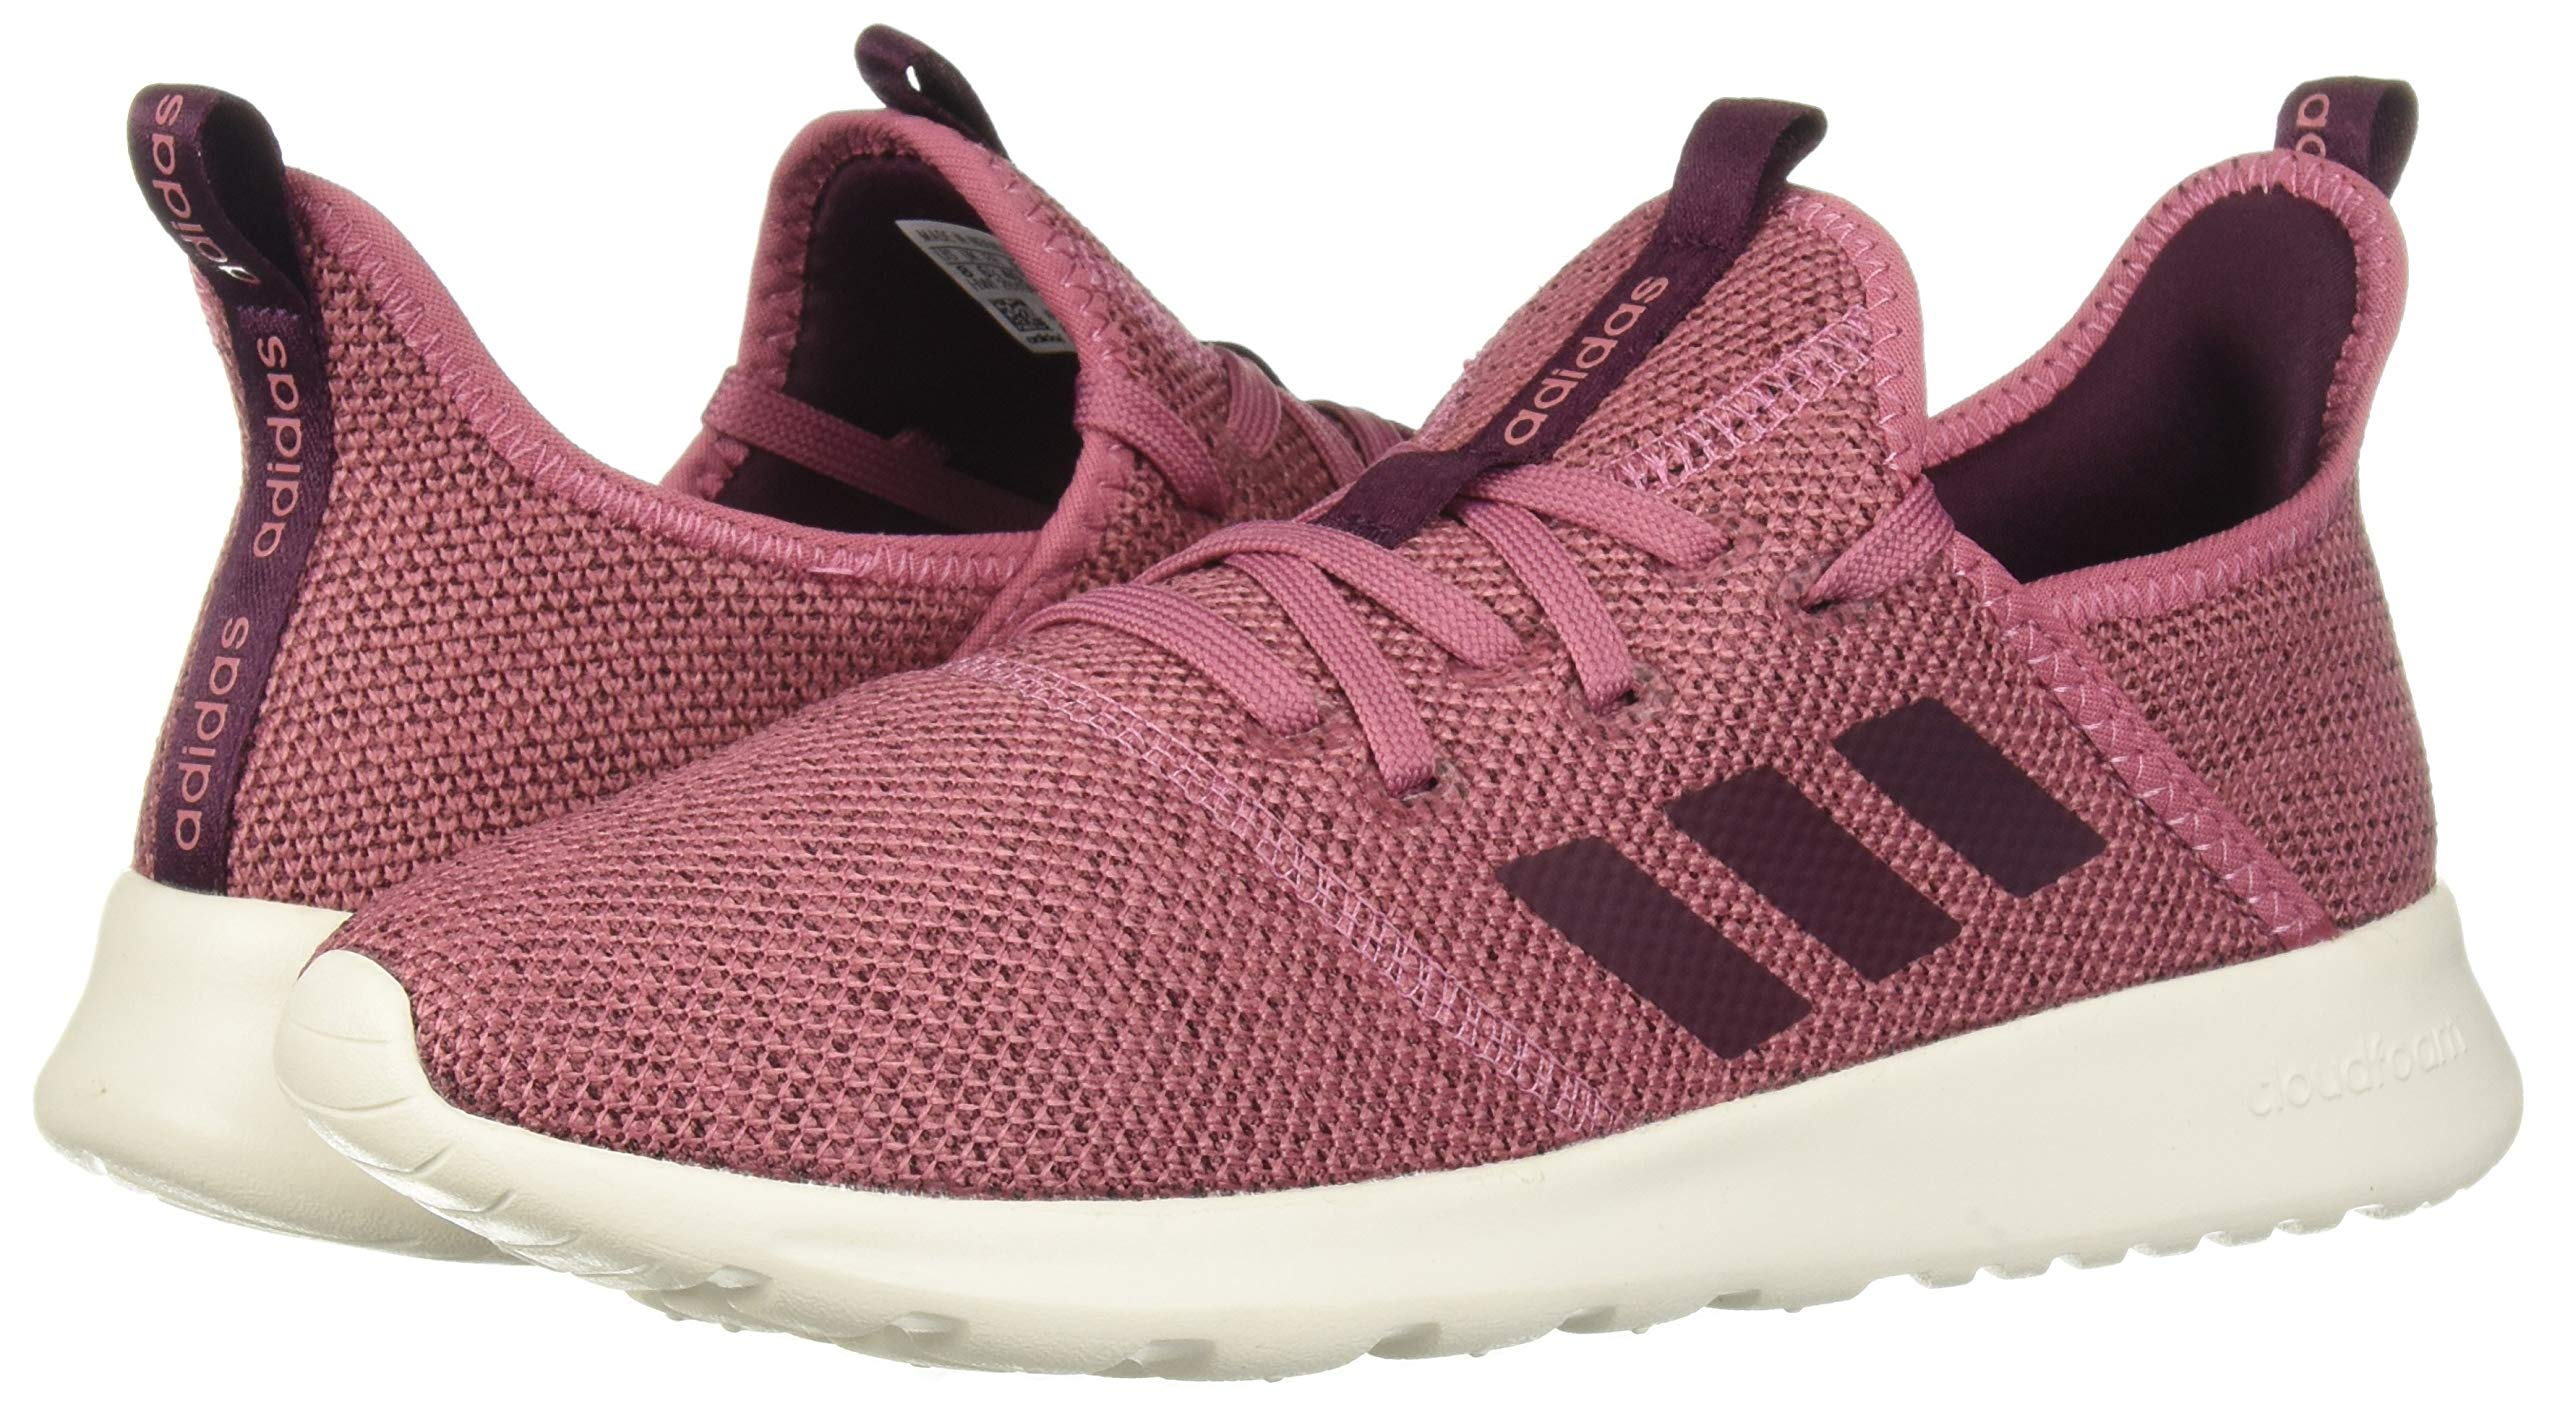 adidas Performance Women's Cloudfoam Pure Running Shoe, Maroon/Maroon/White, 5 M US by adidas (Image #6)